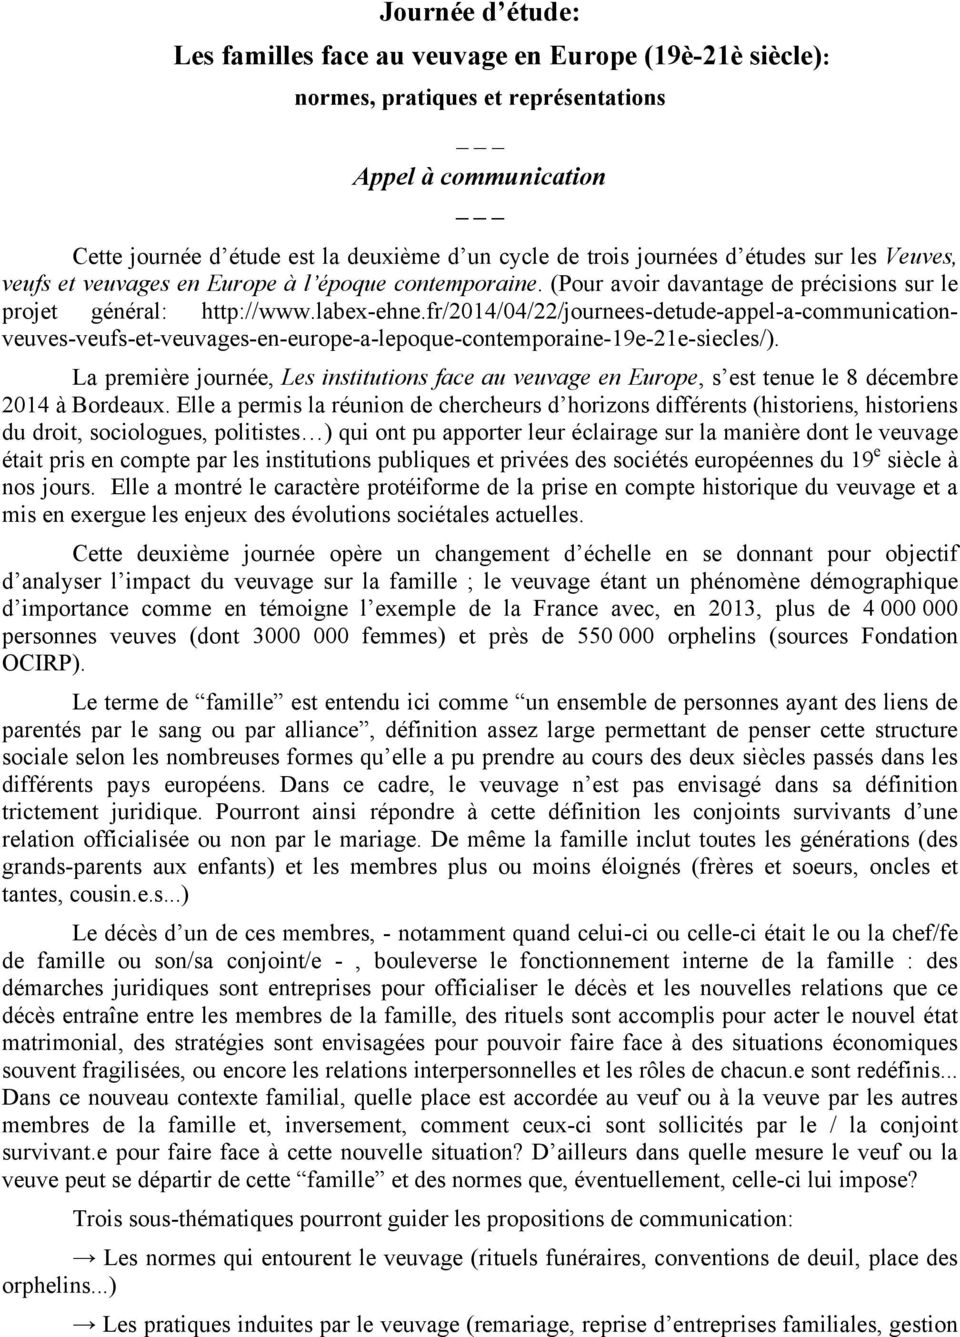 fr/2014/04/22/journees-detude-appel-a-communicationveuves-veufs-et-veuvages-en-europe-a-lepoque-contemporaine-19e-21e-siecles/).